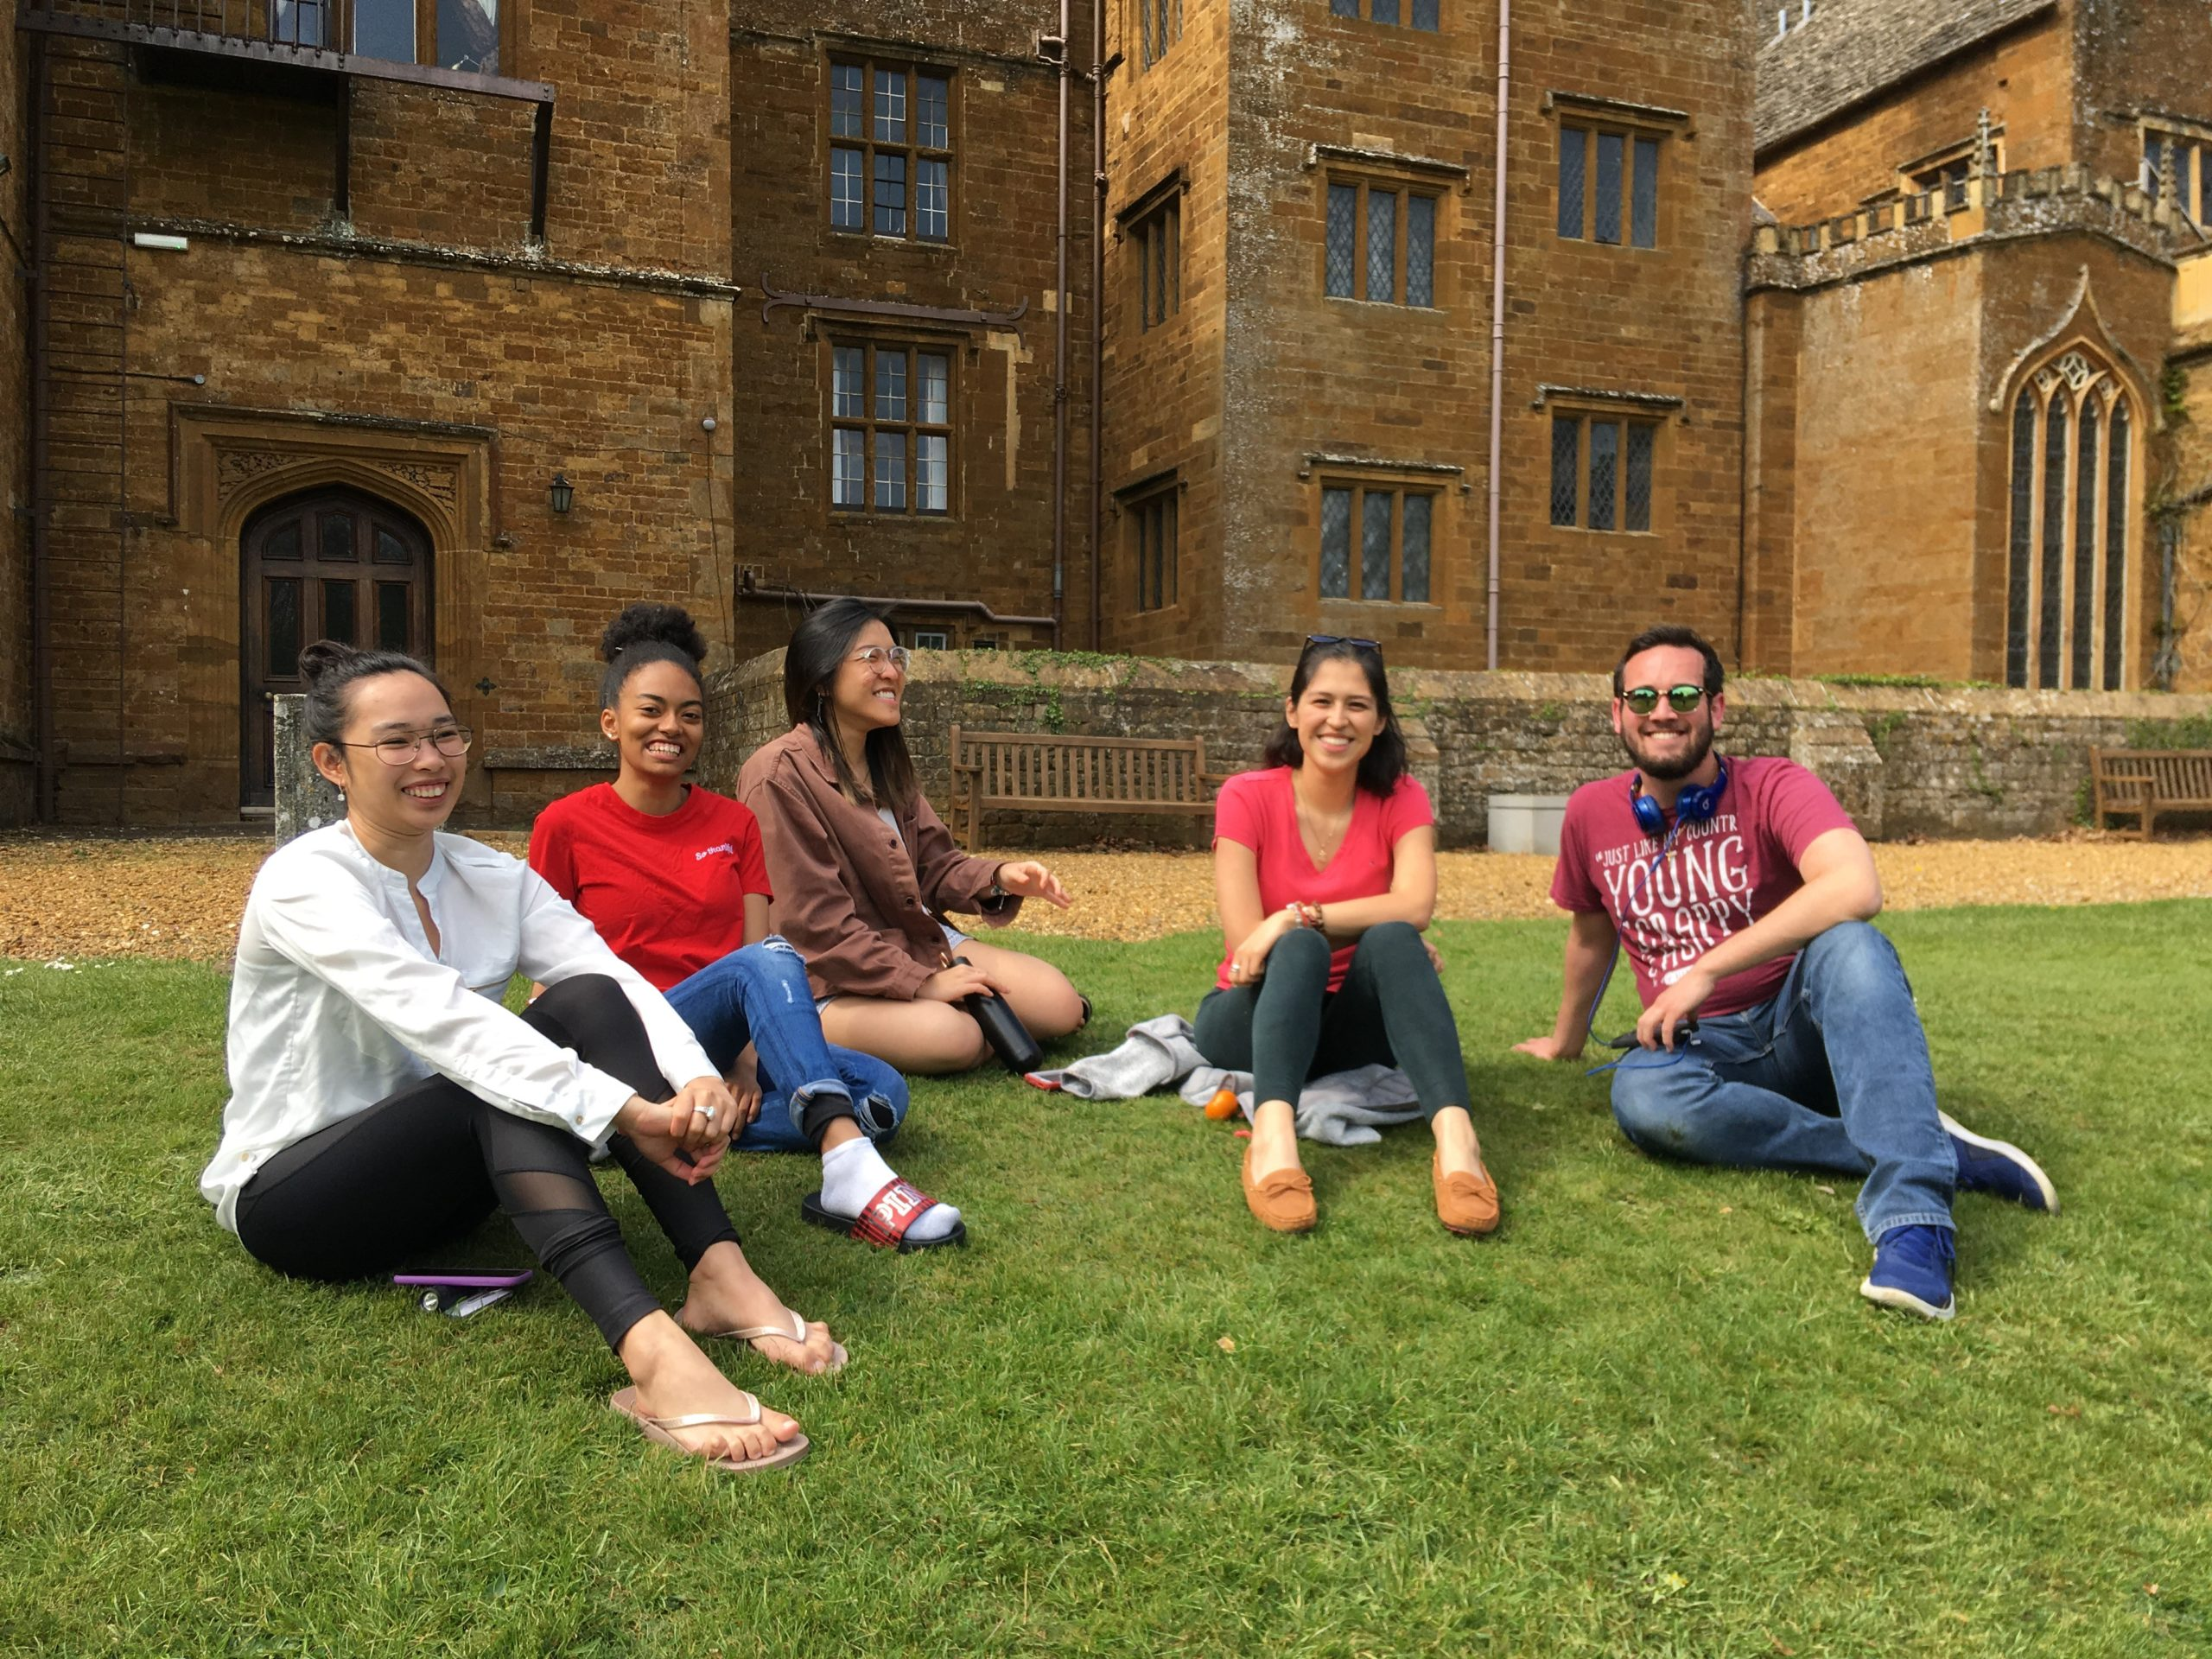 Students sit and smile in front of the Wroxton Abbey